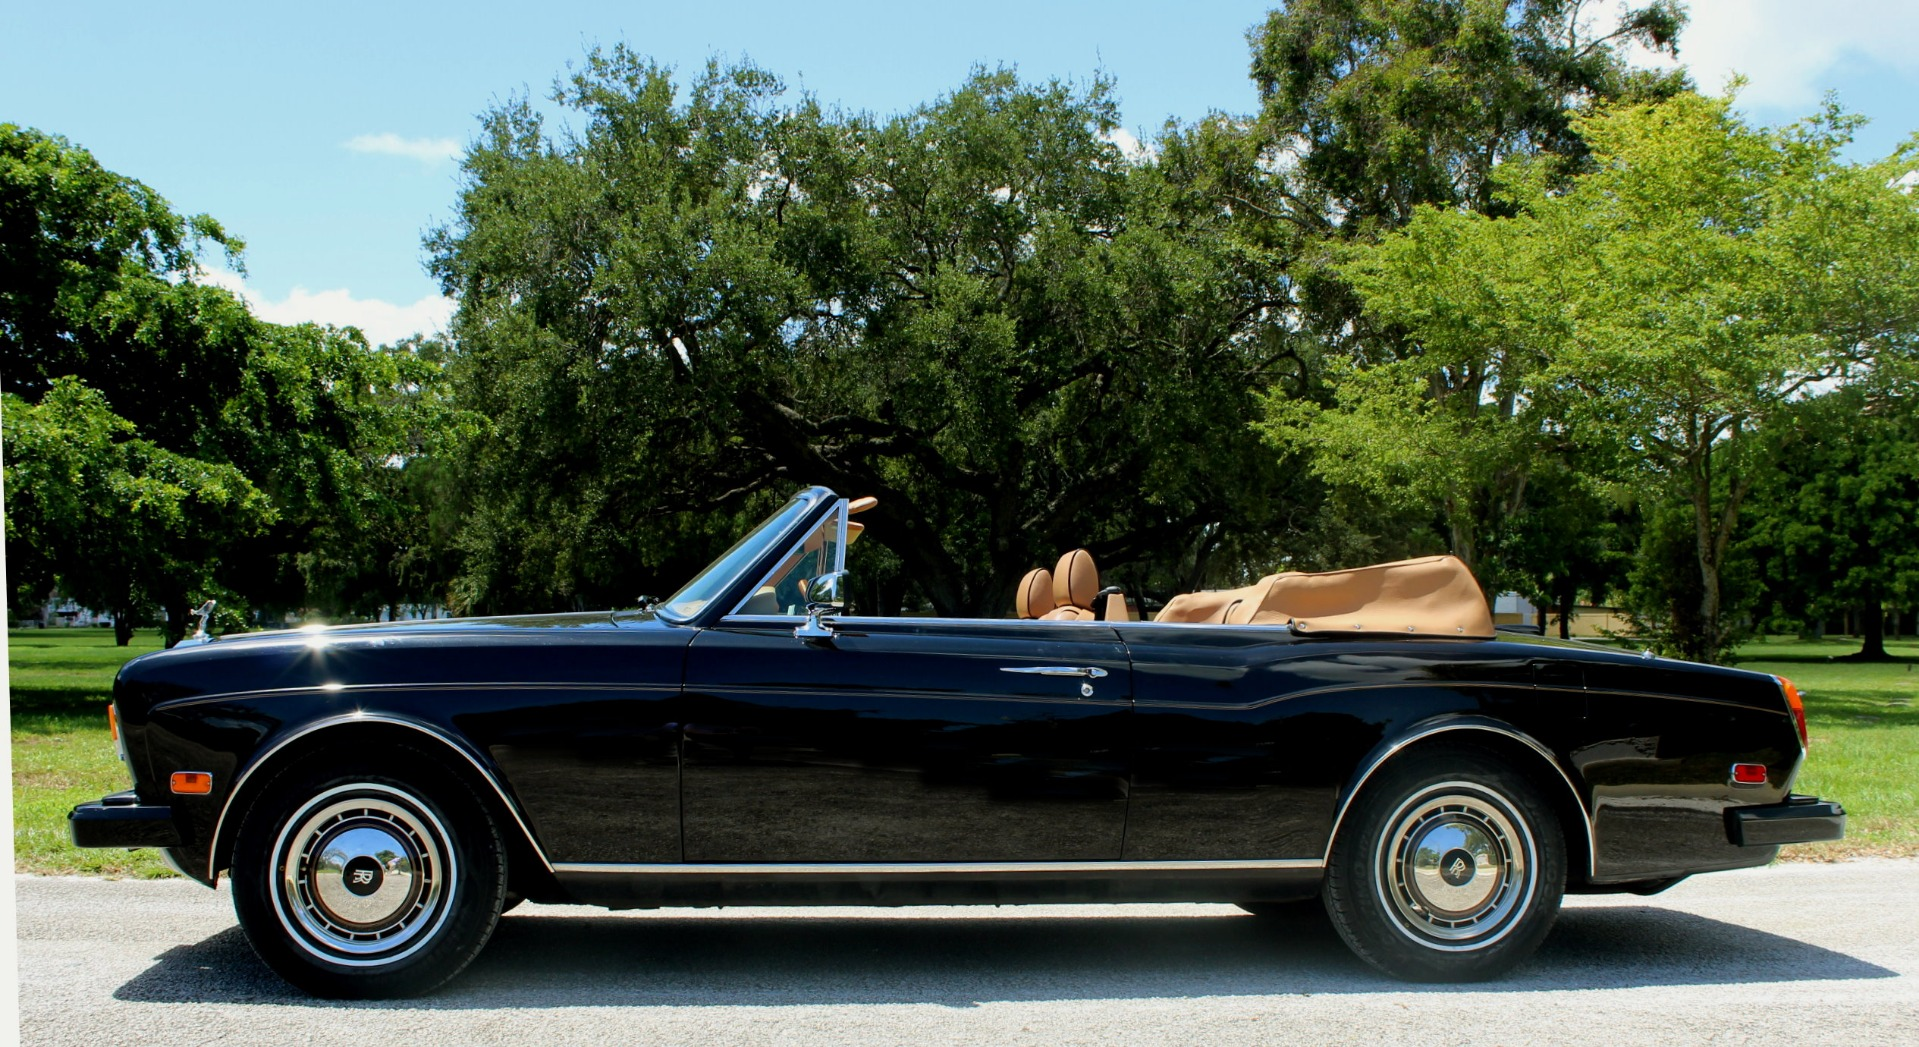 Used-1995-Rolls-Royce-Corniche-IV-2nd-Series--Last-Year-of-Production